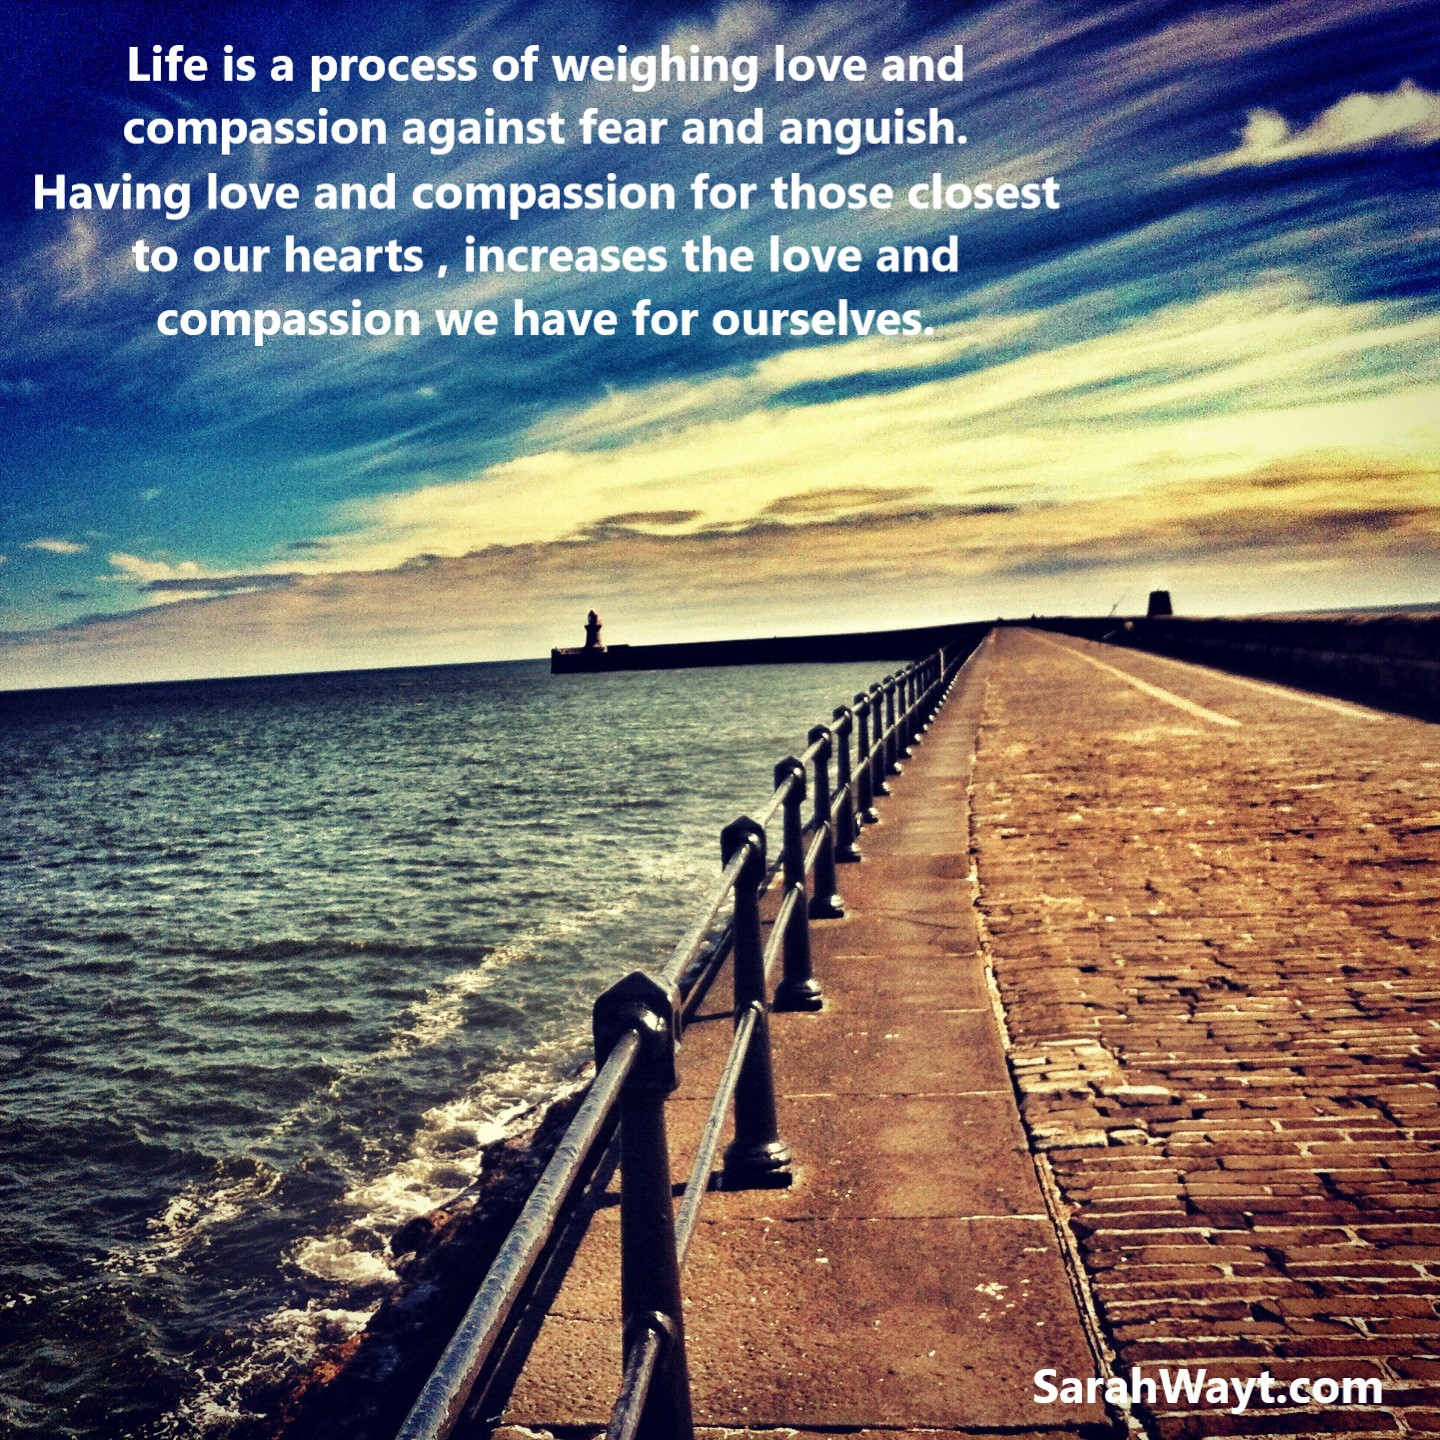 life is a process of weighing love and compassion against fear and anguish